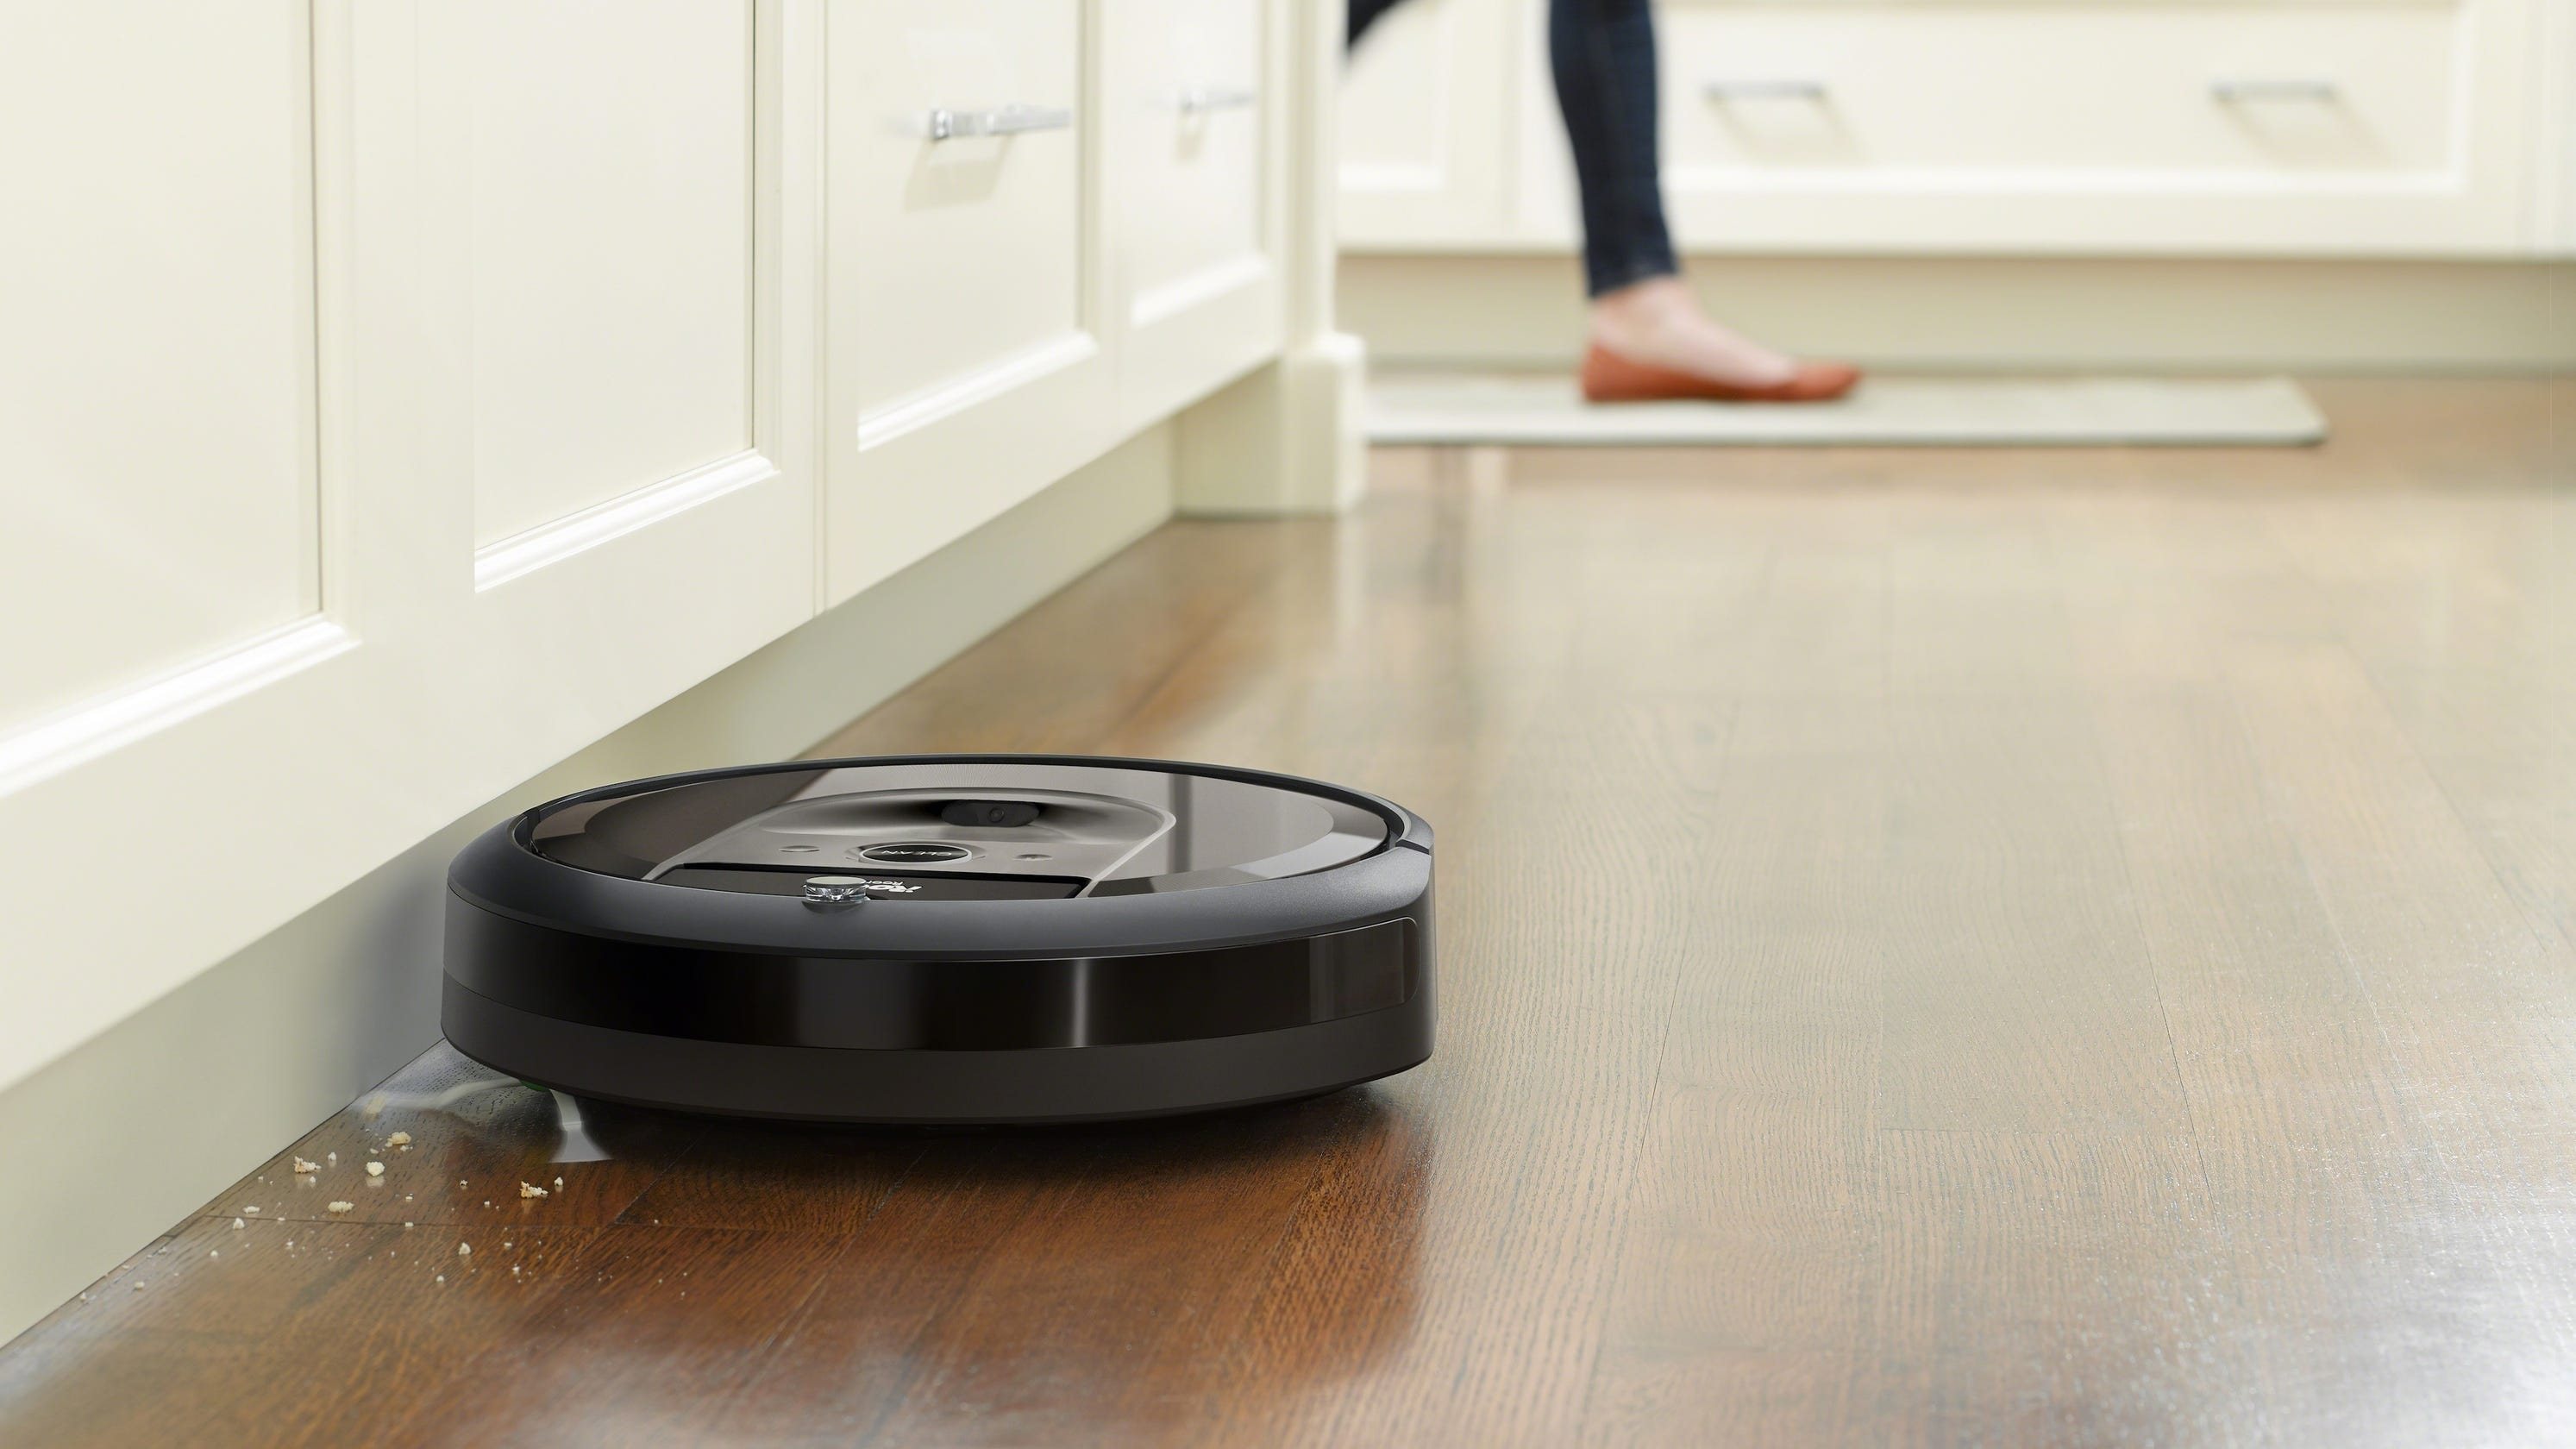 Cyber Monday 2020: This top-rated Roomba is discounted $200 right now